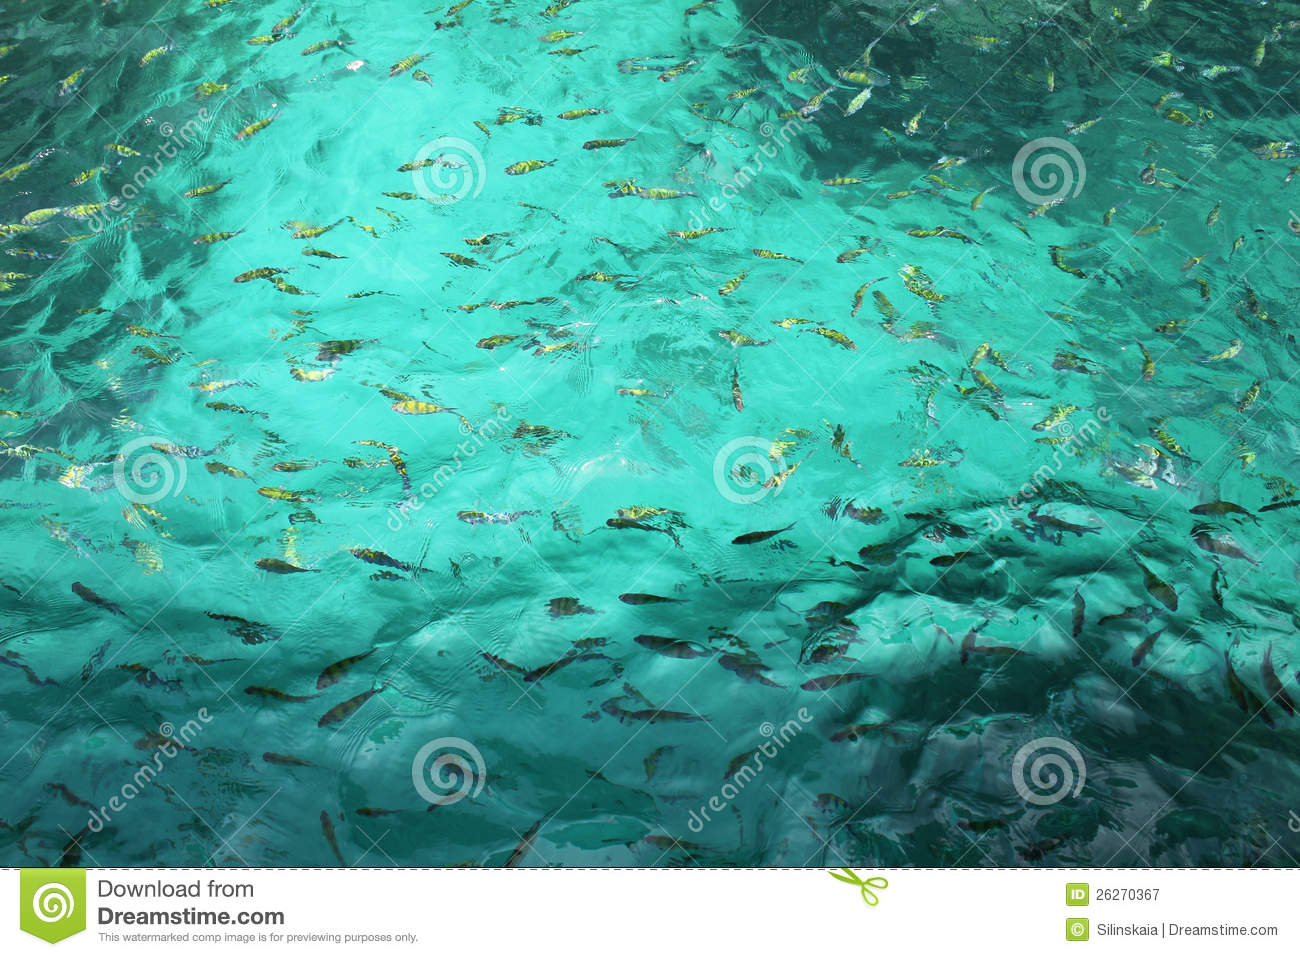 Lots of small fish in the turquoise water stock image for Lots of fish